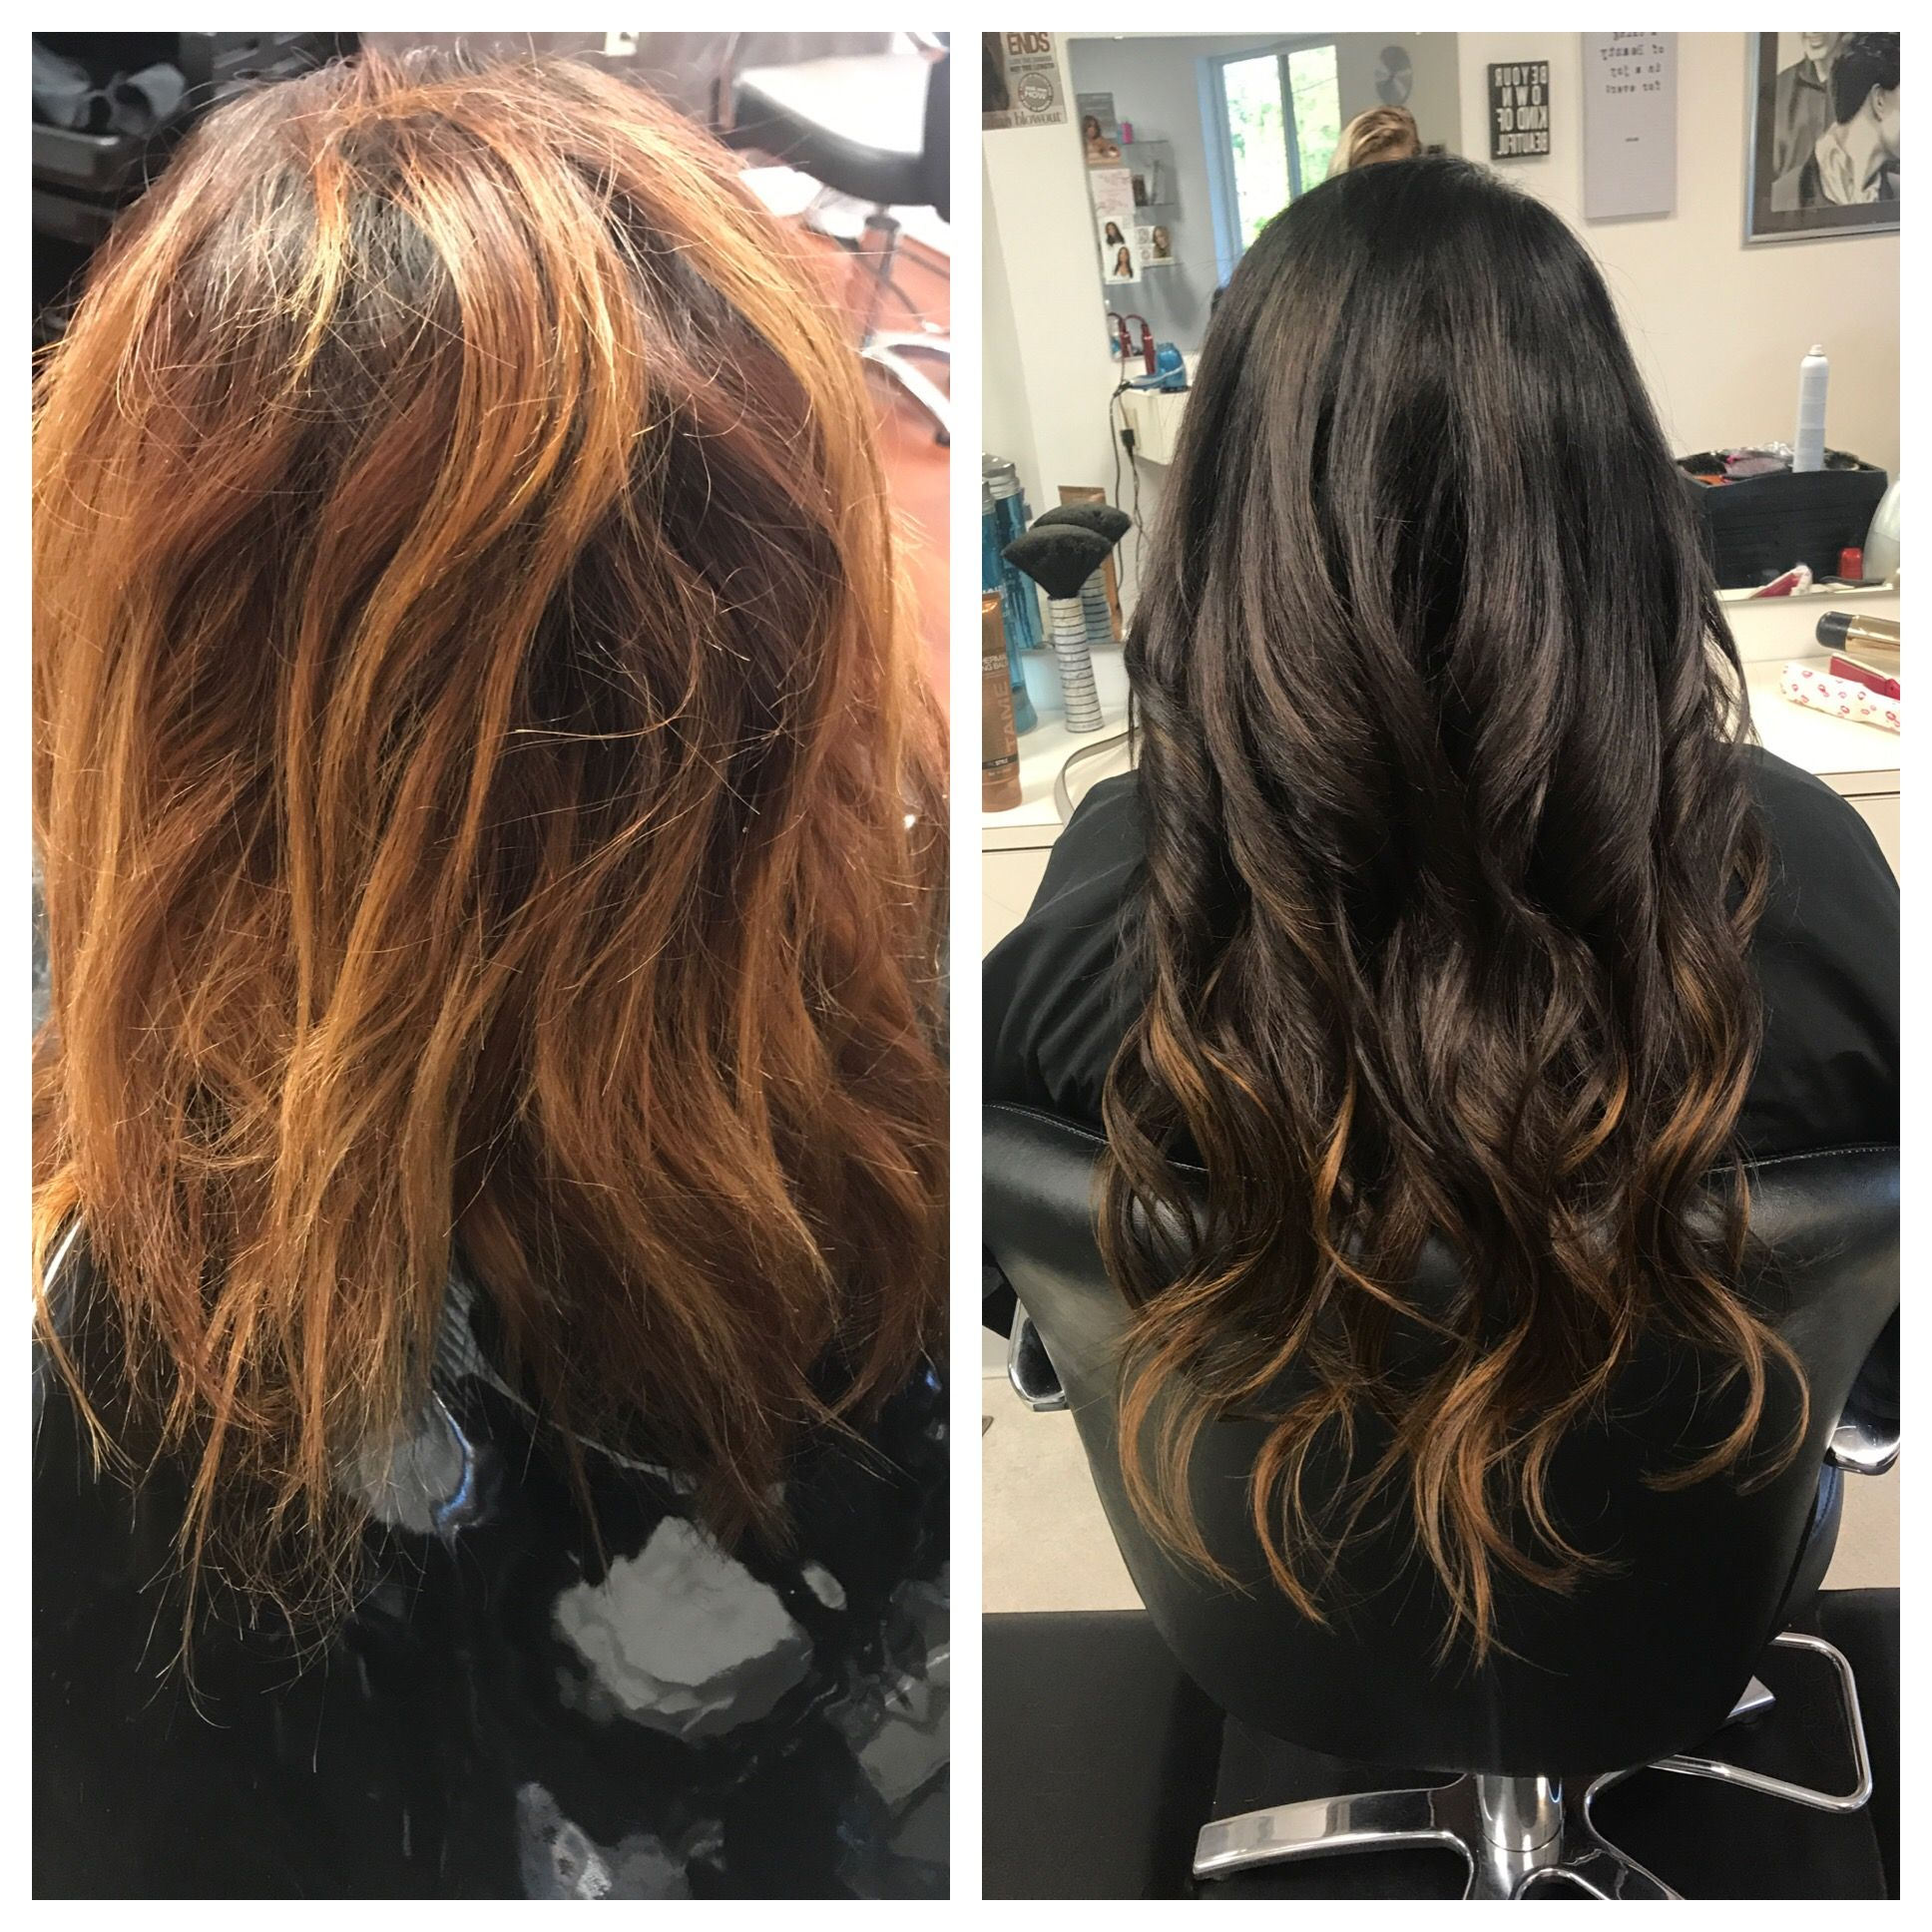 Using Dream Catcher Extensions We Added Length While Coloring A 5ch All Over And 7s At The Ends Colored Hair Extensions Hair Color Shampoo Organic Hair Color